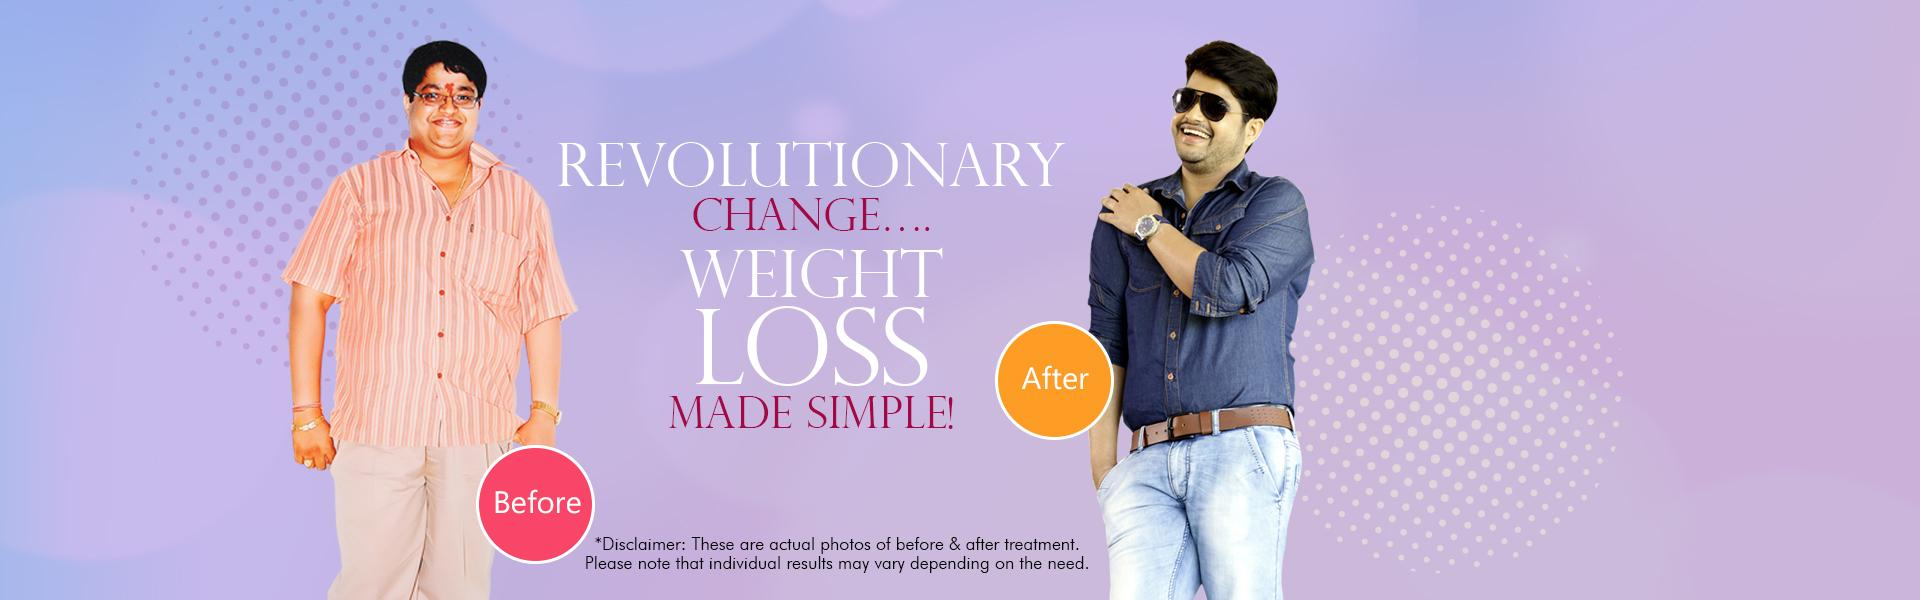 Best Weight Loss Clinic & Slimming Center In Chennai, Hyderabad, Bangalor & Vizag